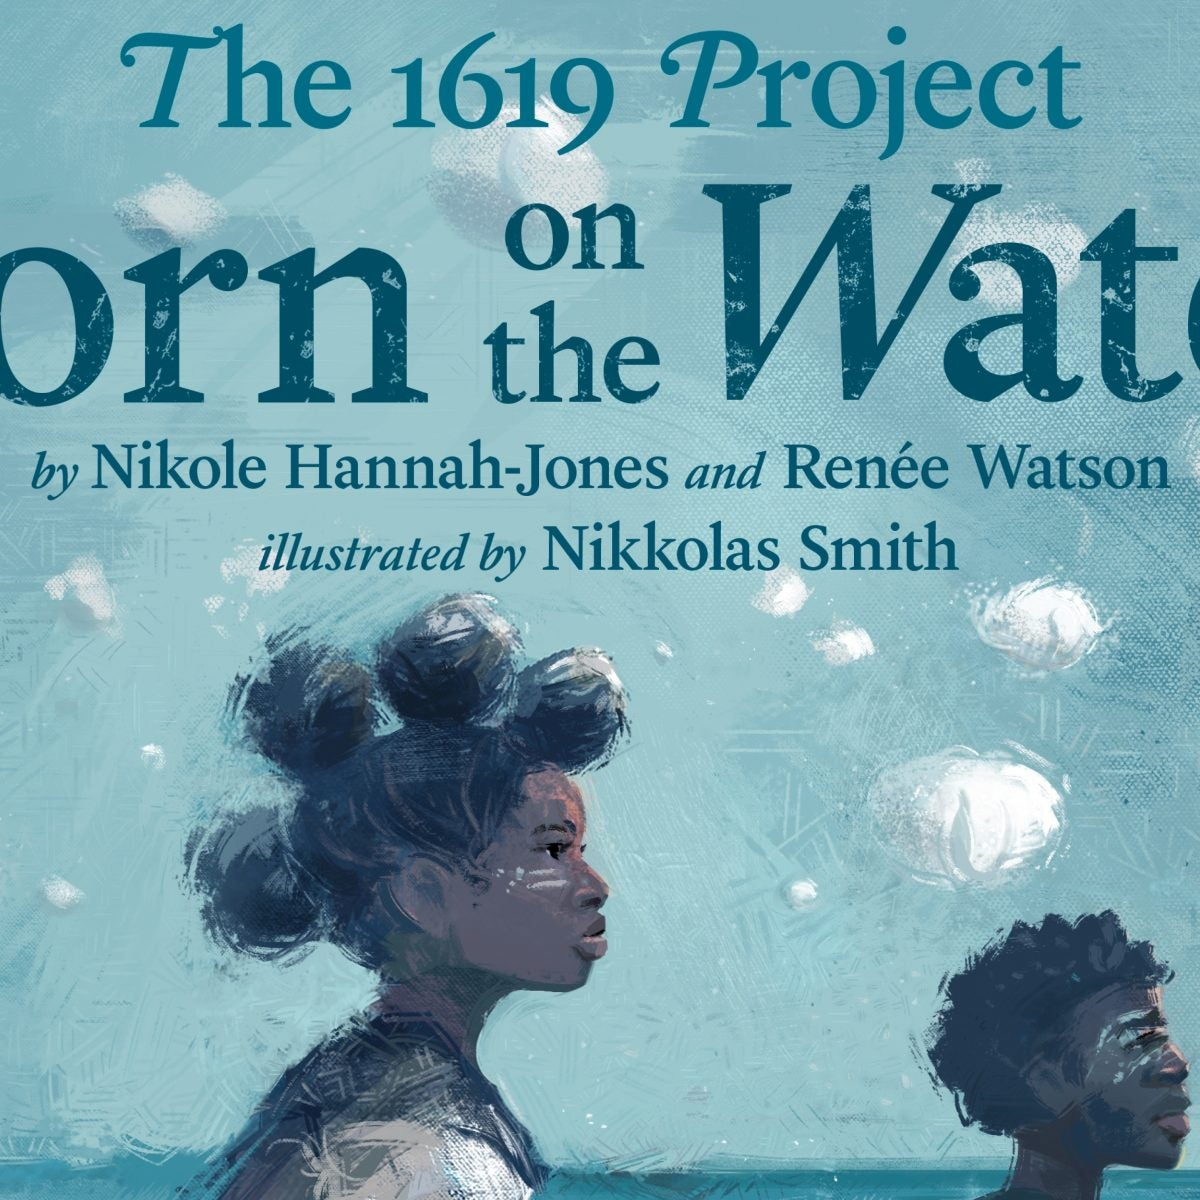 EXCLUSIVE: Nikole Hannah-Jones and Co-Author Renée Watson Debut 'Born on the Water,' a New Children's Book Based on The 1619 Project